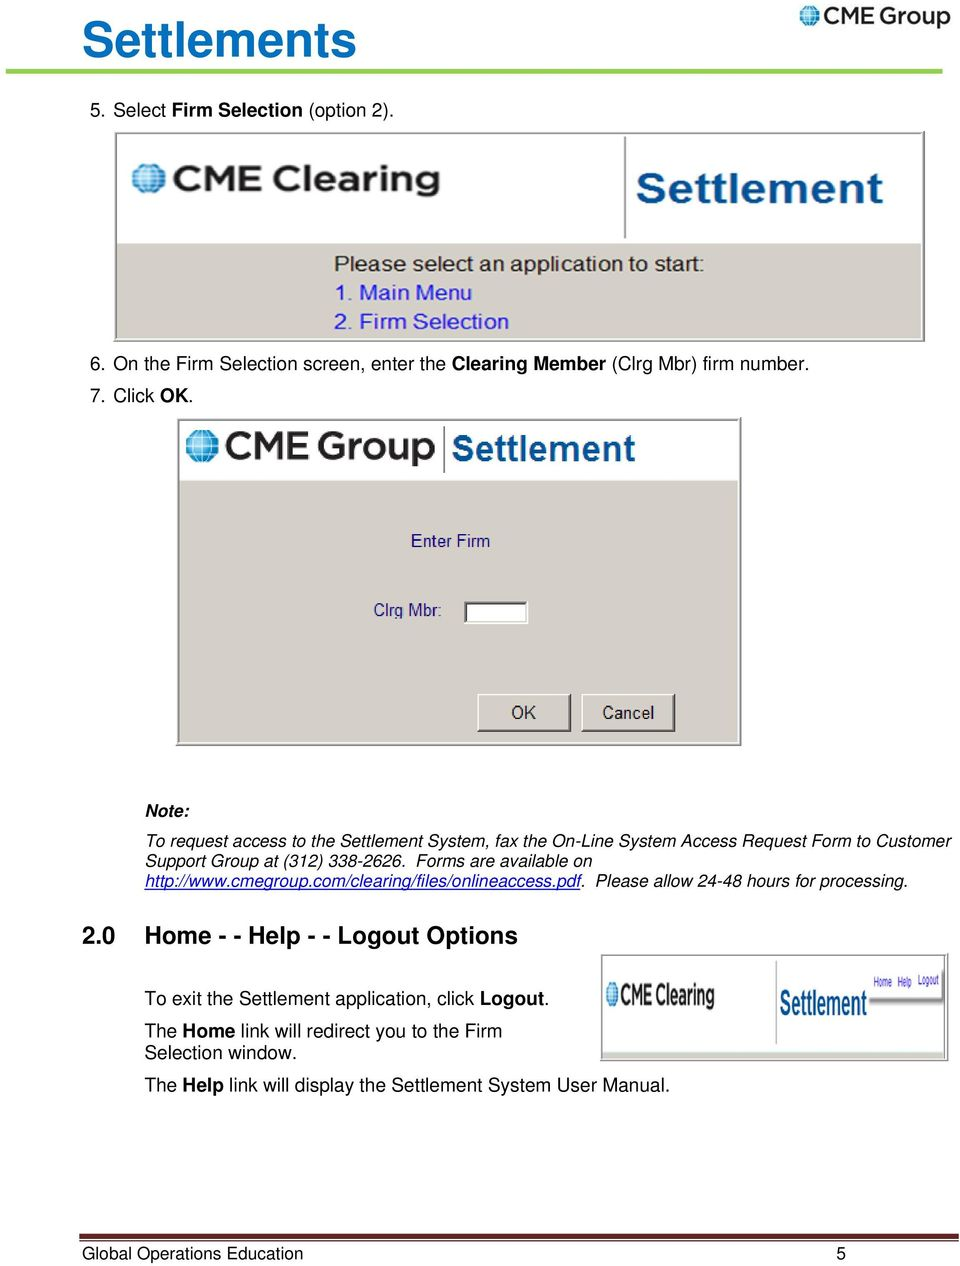 Forms are available on http://www.cmegroup.com/clearing/files/onlineaccess.pdf. Please allow 24